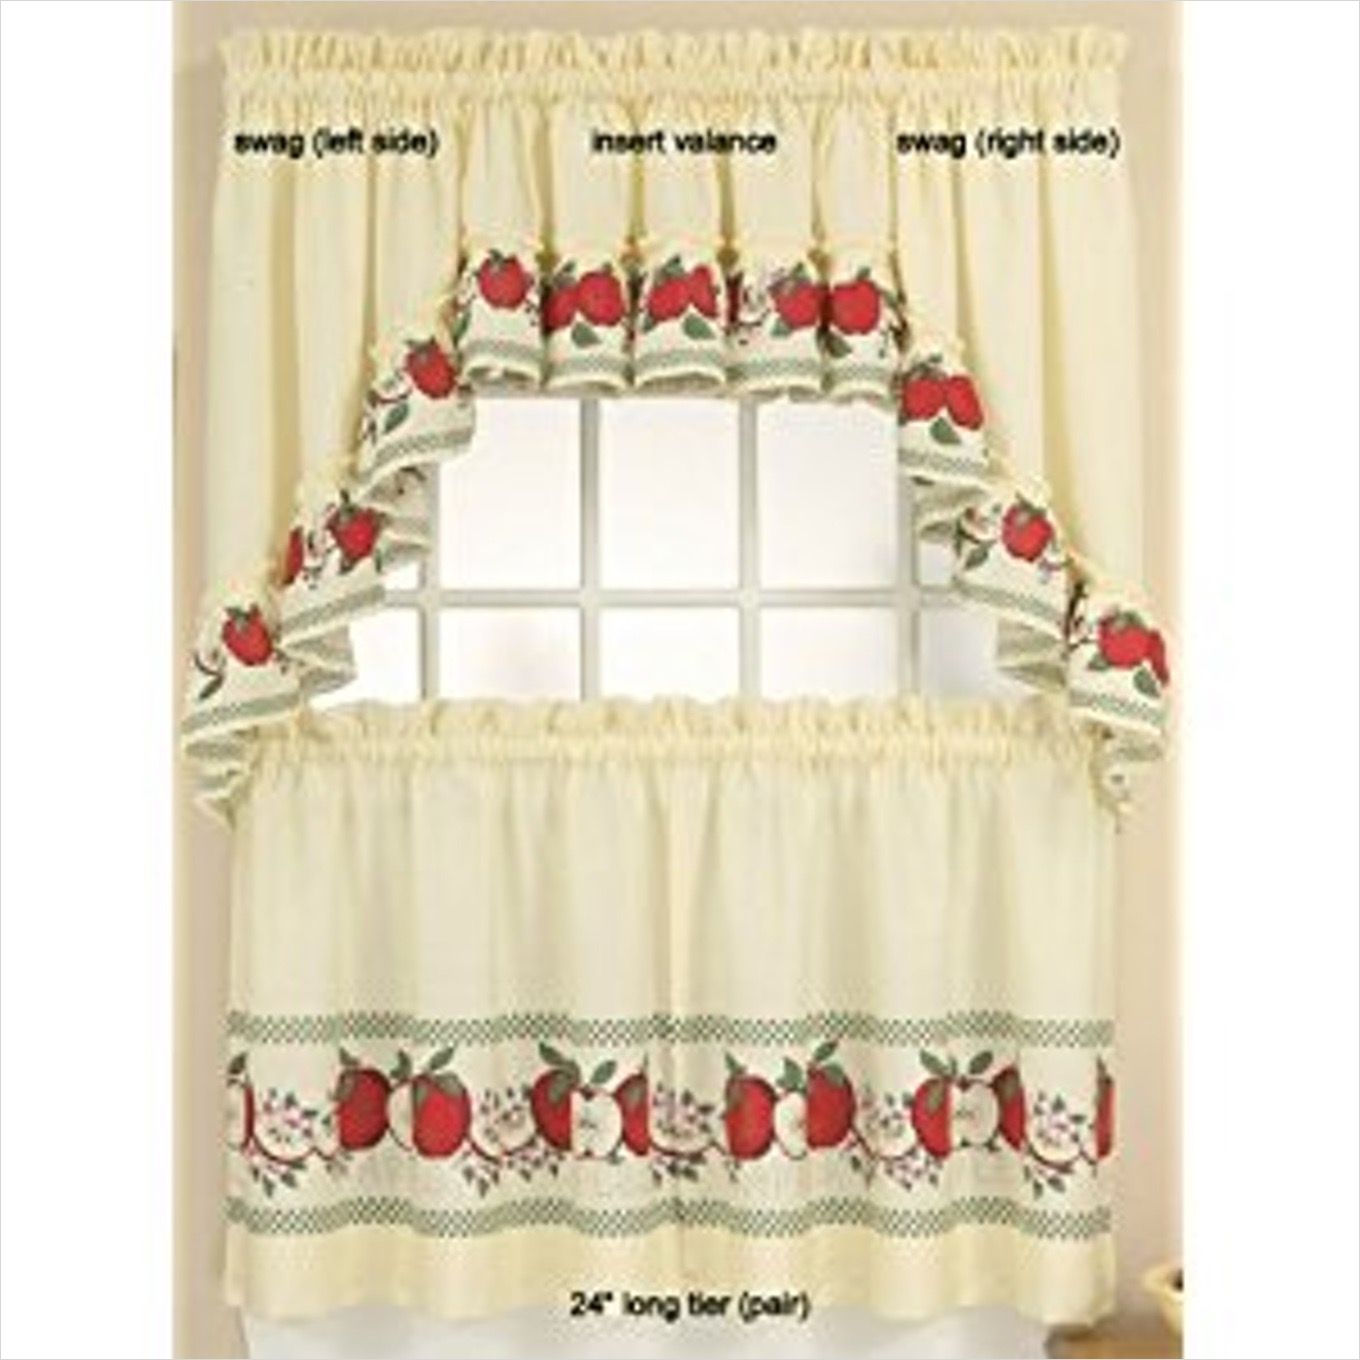 41 Perfect Farmhouse Country Kitchen Curtain Valances 45 Shopko Kitchen Valances Farmhouse Country Curtain Walmart Set W Swags with Additional Walmart 5